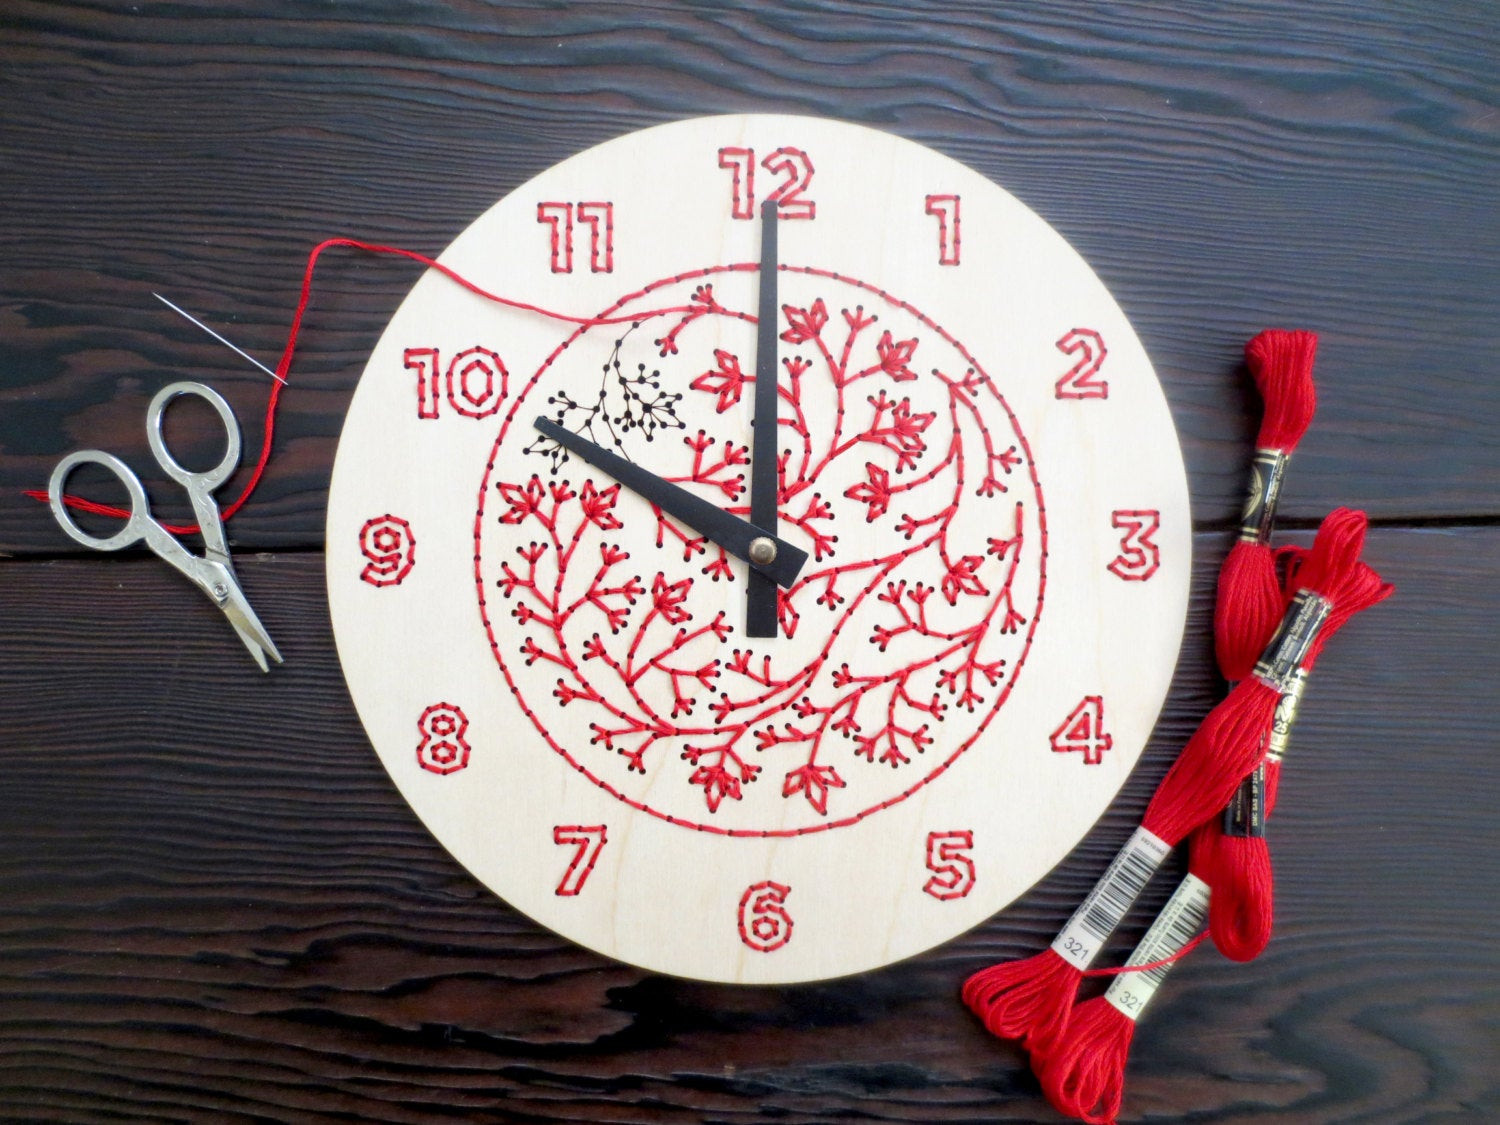 Best ideas about DIY Clock Kit . Save or Pin DIY Embroidery Wood Clock Kit Now.